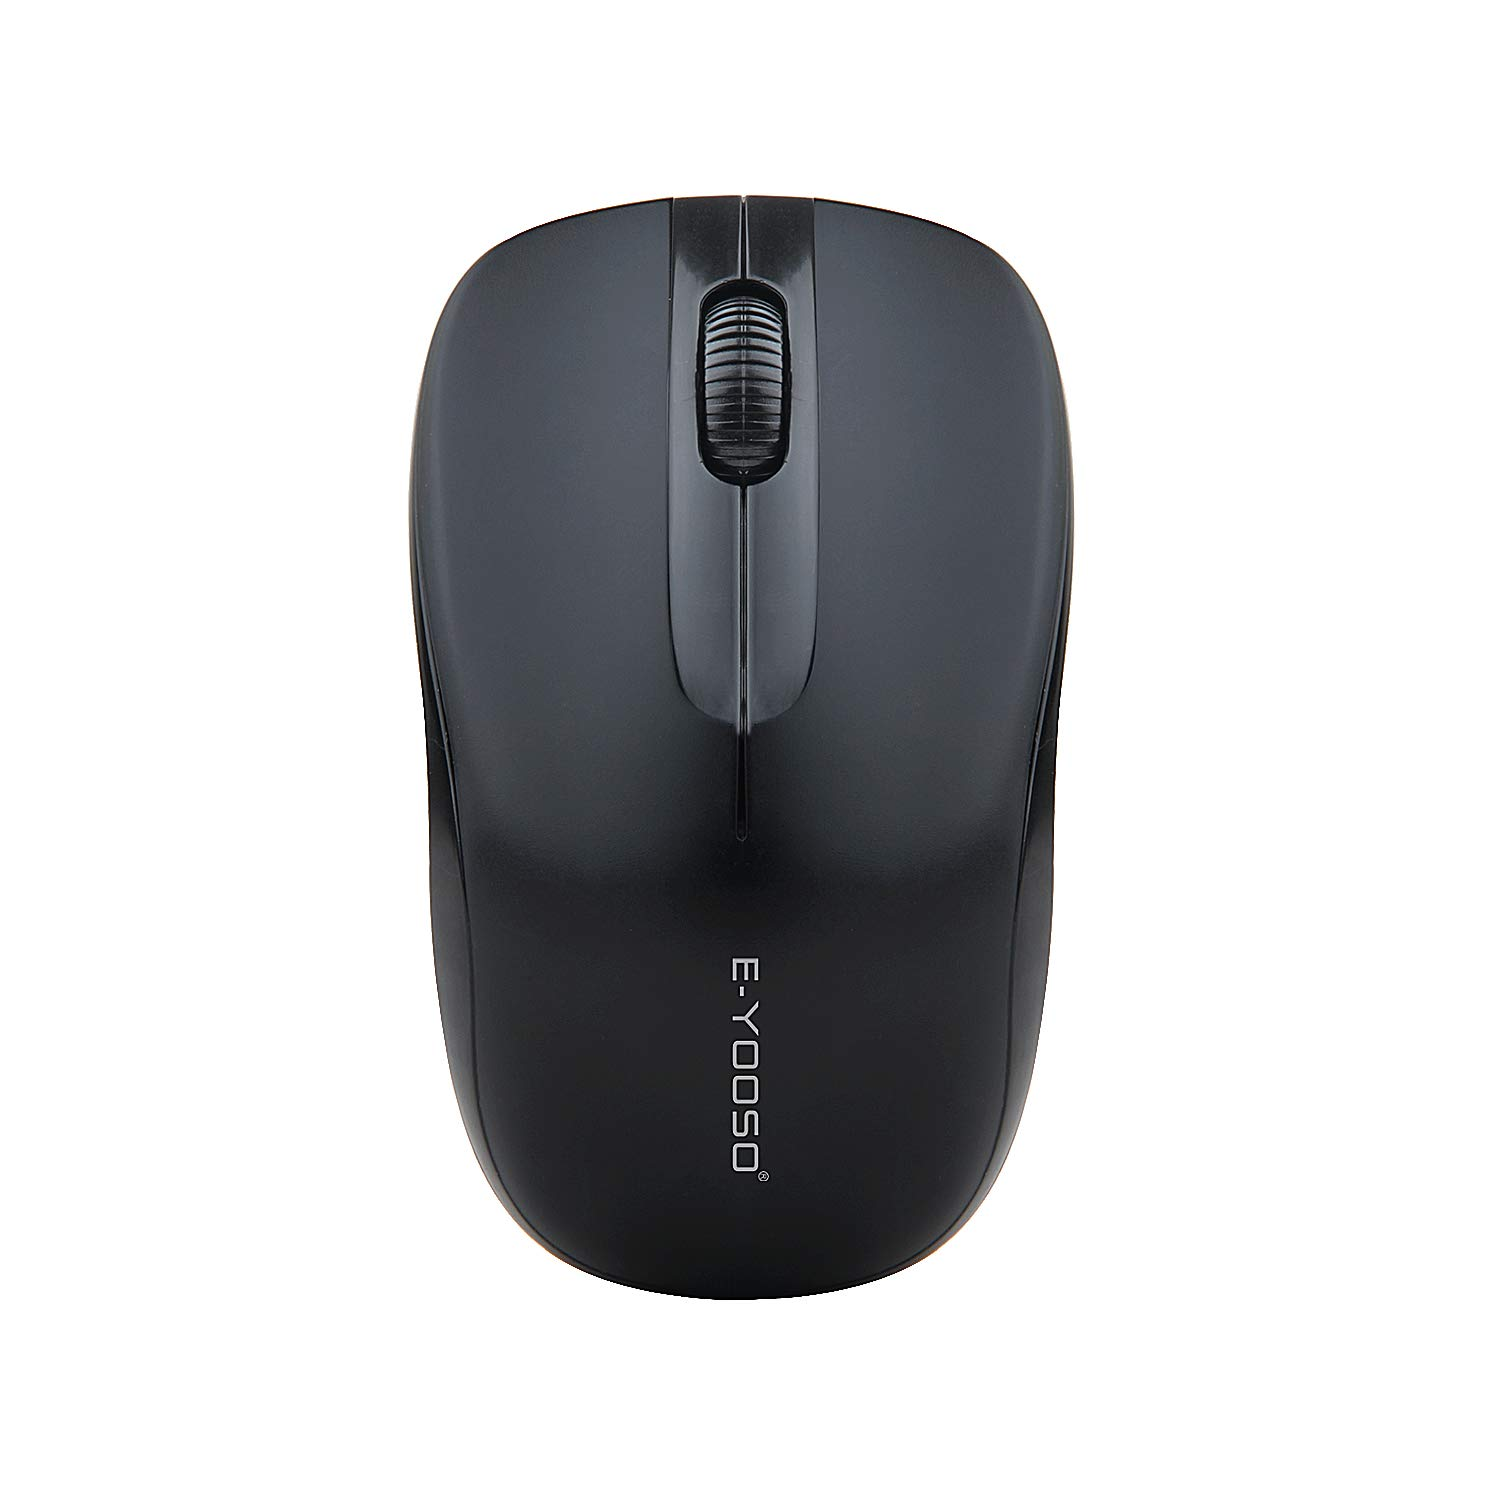 8fdca14f519 Wireless Mouse, E-YOOSO 2.4GHz Basic Fast-Scrolling Minimalist Work  Wireless Mouse,Mobile Optical Mouse,Solid Wireless Mice with USB Nano  Receiver for Mac ...